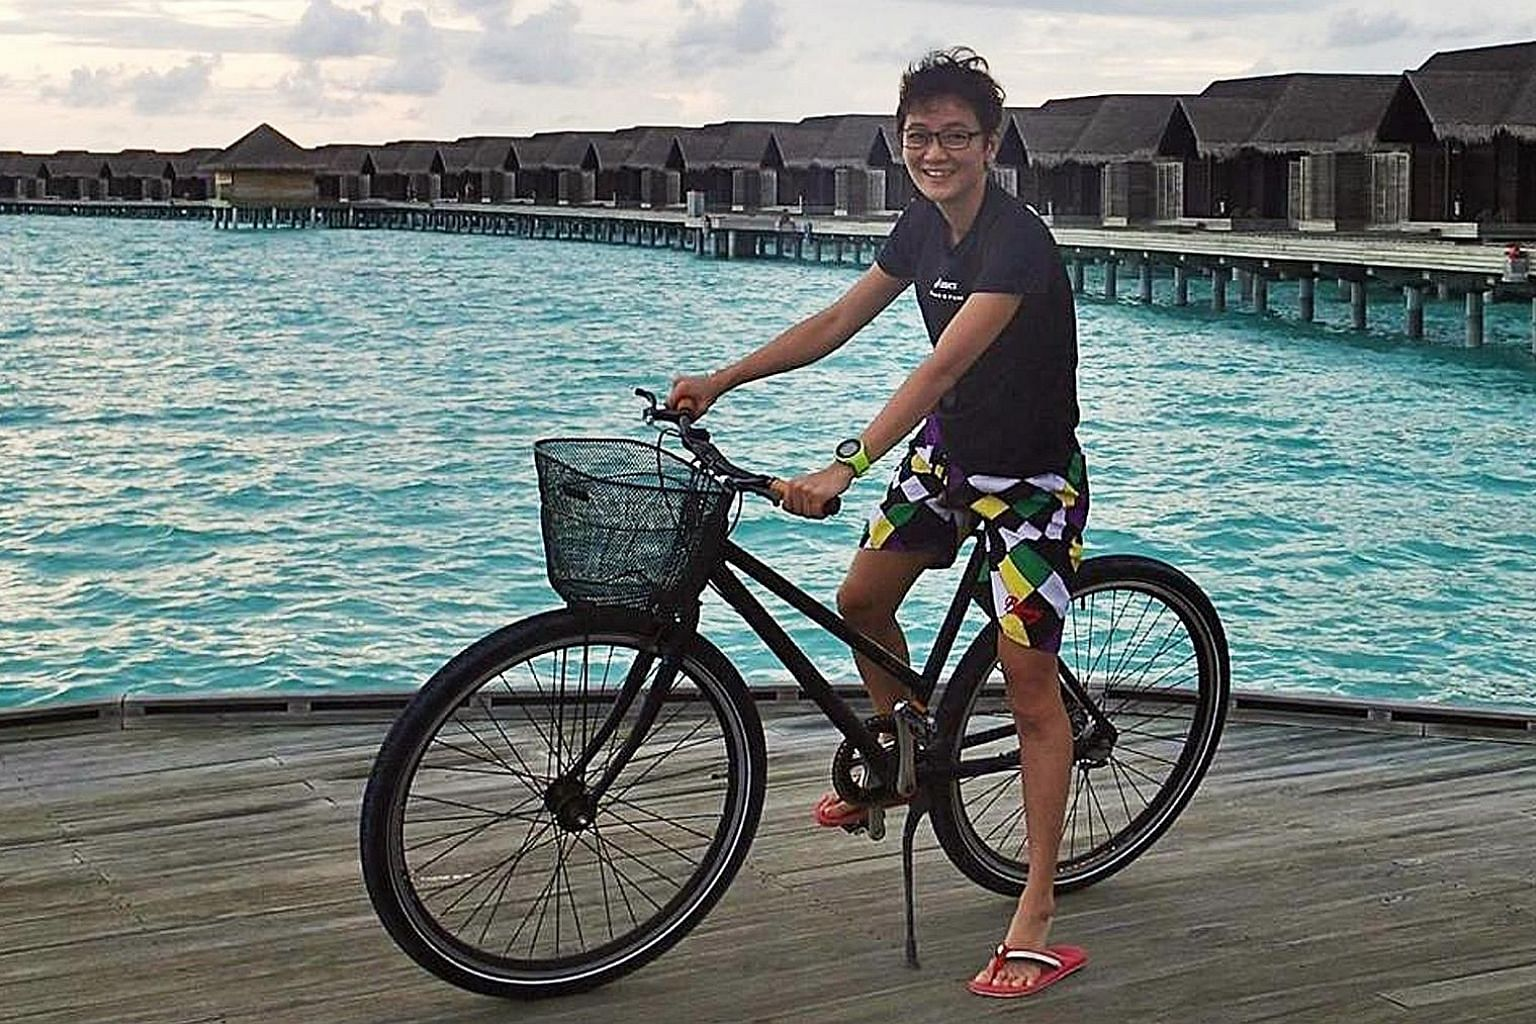 Dr Wong Yu Yi, 48, was an aesthetic doctor at Novena Medical Centre. An energetic and active person, she enjoyed scuba diving, photography and playing the guitar. Her husband is a surgeon, and they have three children.